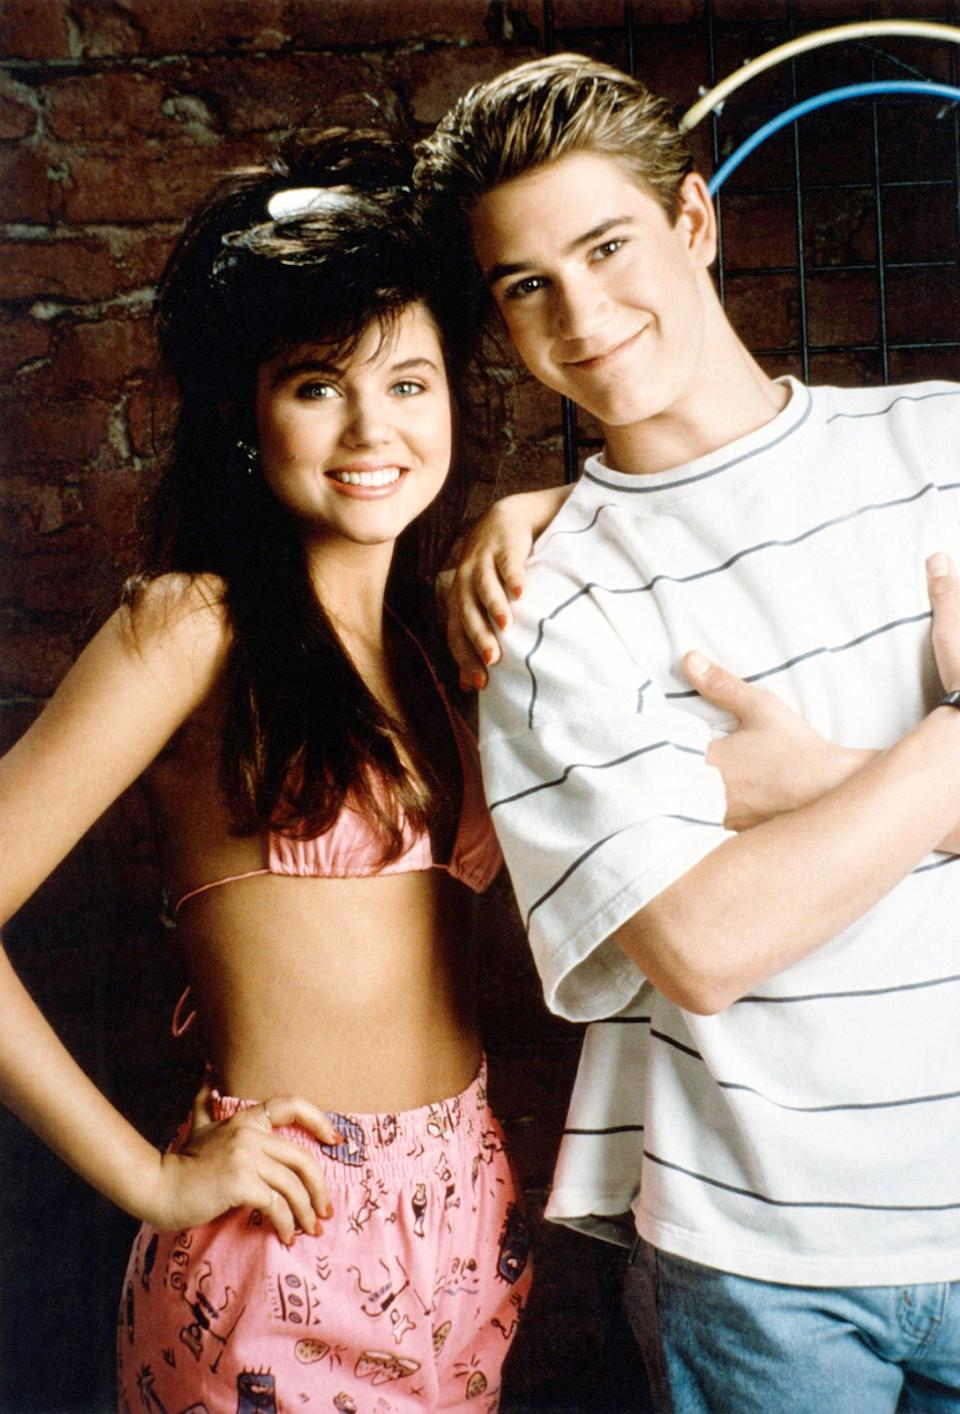 """<p>Make all the guys swoon as Kelly Kapowski from <b><a class=""""link rapid-noclick-resp"""" href=""""https://www.popsugar.co.uk/Saved-by-the-Bell"""" rel=""""nofollow noopener"""" target=""""_blank"""" data-ylk=""""slk:Saved by the Bell"""">Saved by the Bell</a></b>. You just need a white lacy bandeau top, high-waisted jeans, and suspenders. Don't forget the bangin' hairstyle!</p>"""